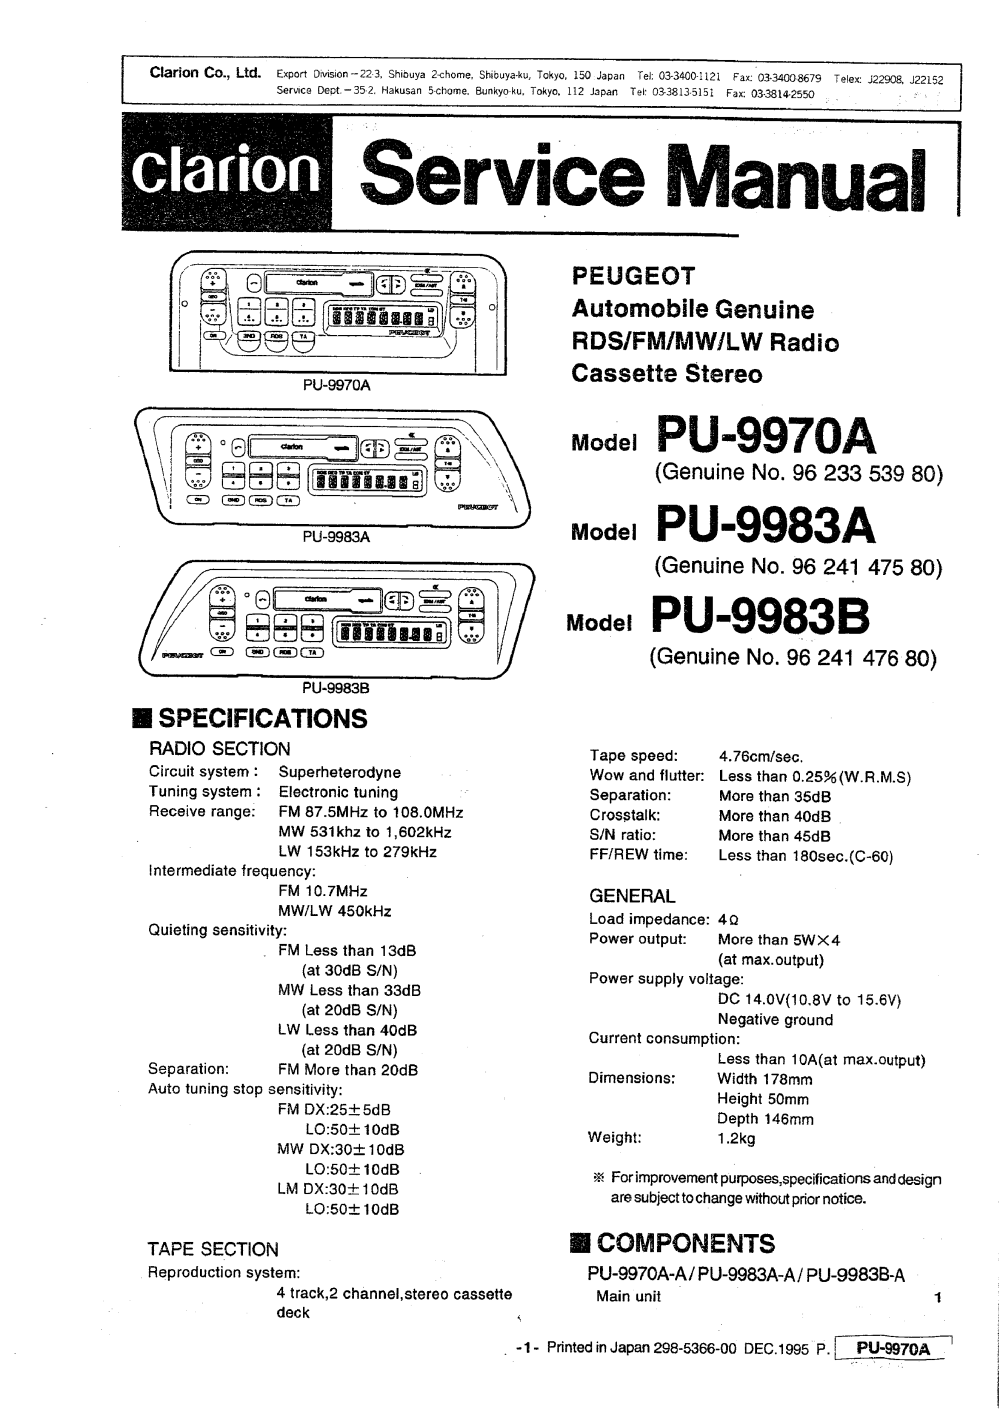 medium resolution of clarion pu9970a service manual